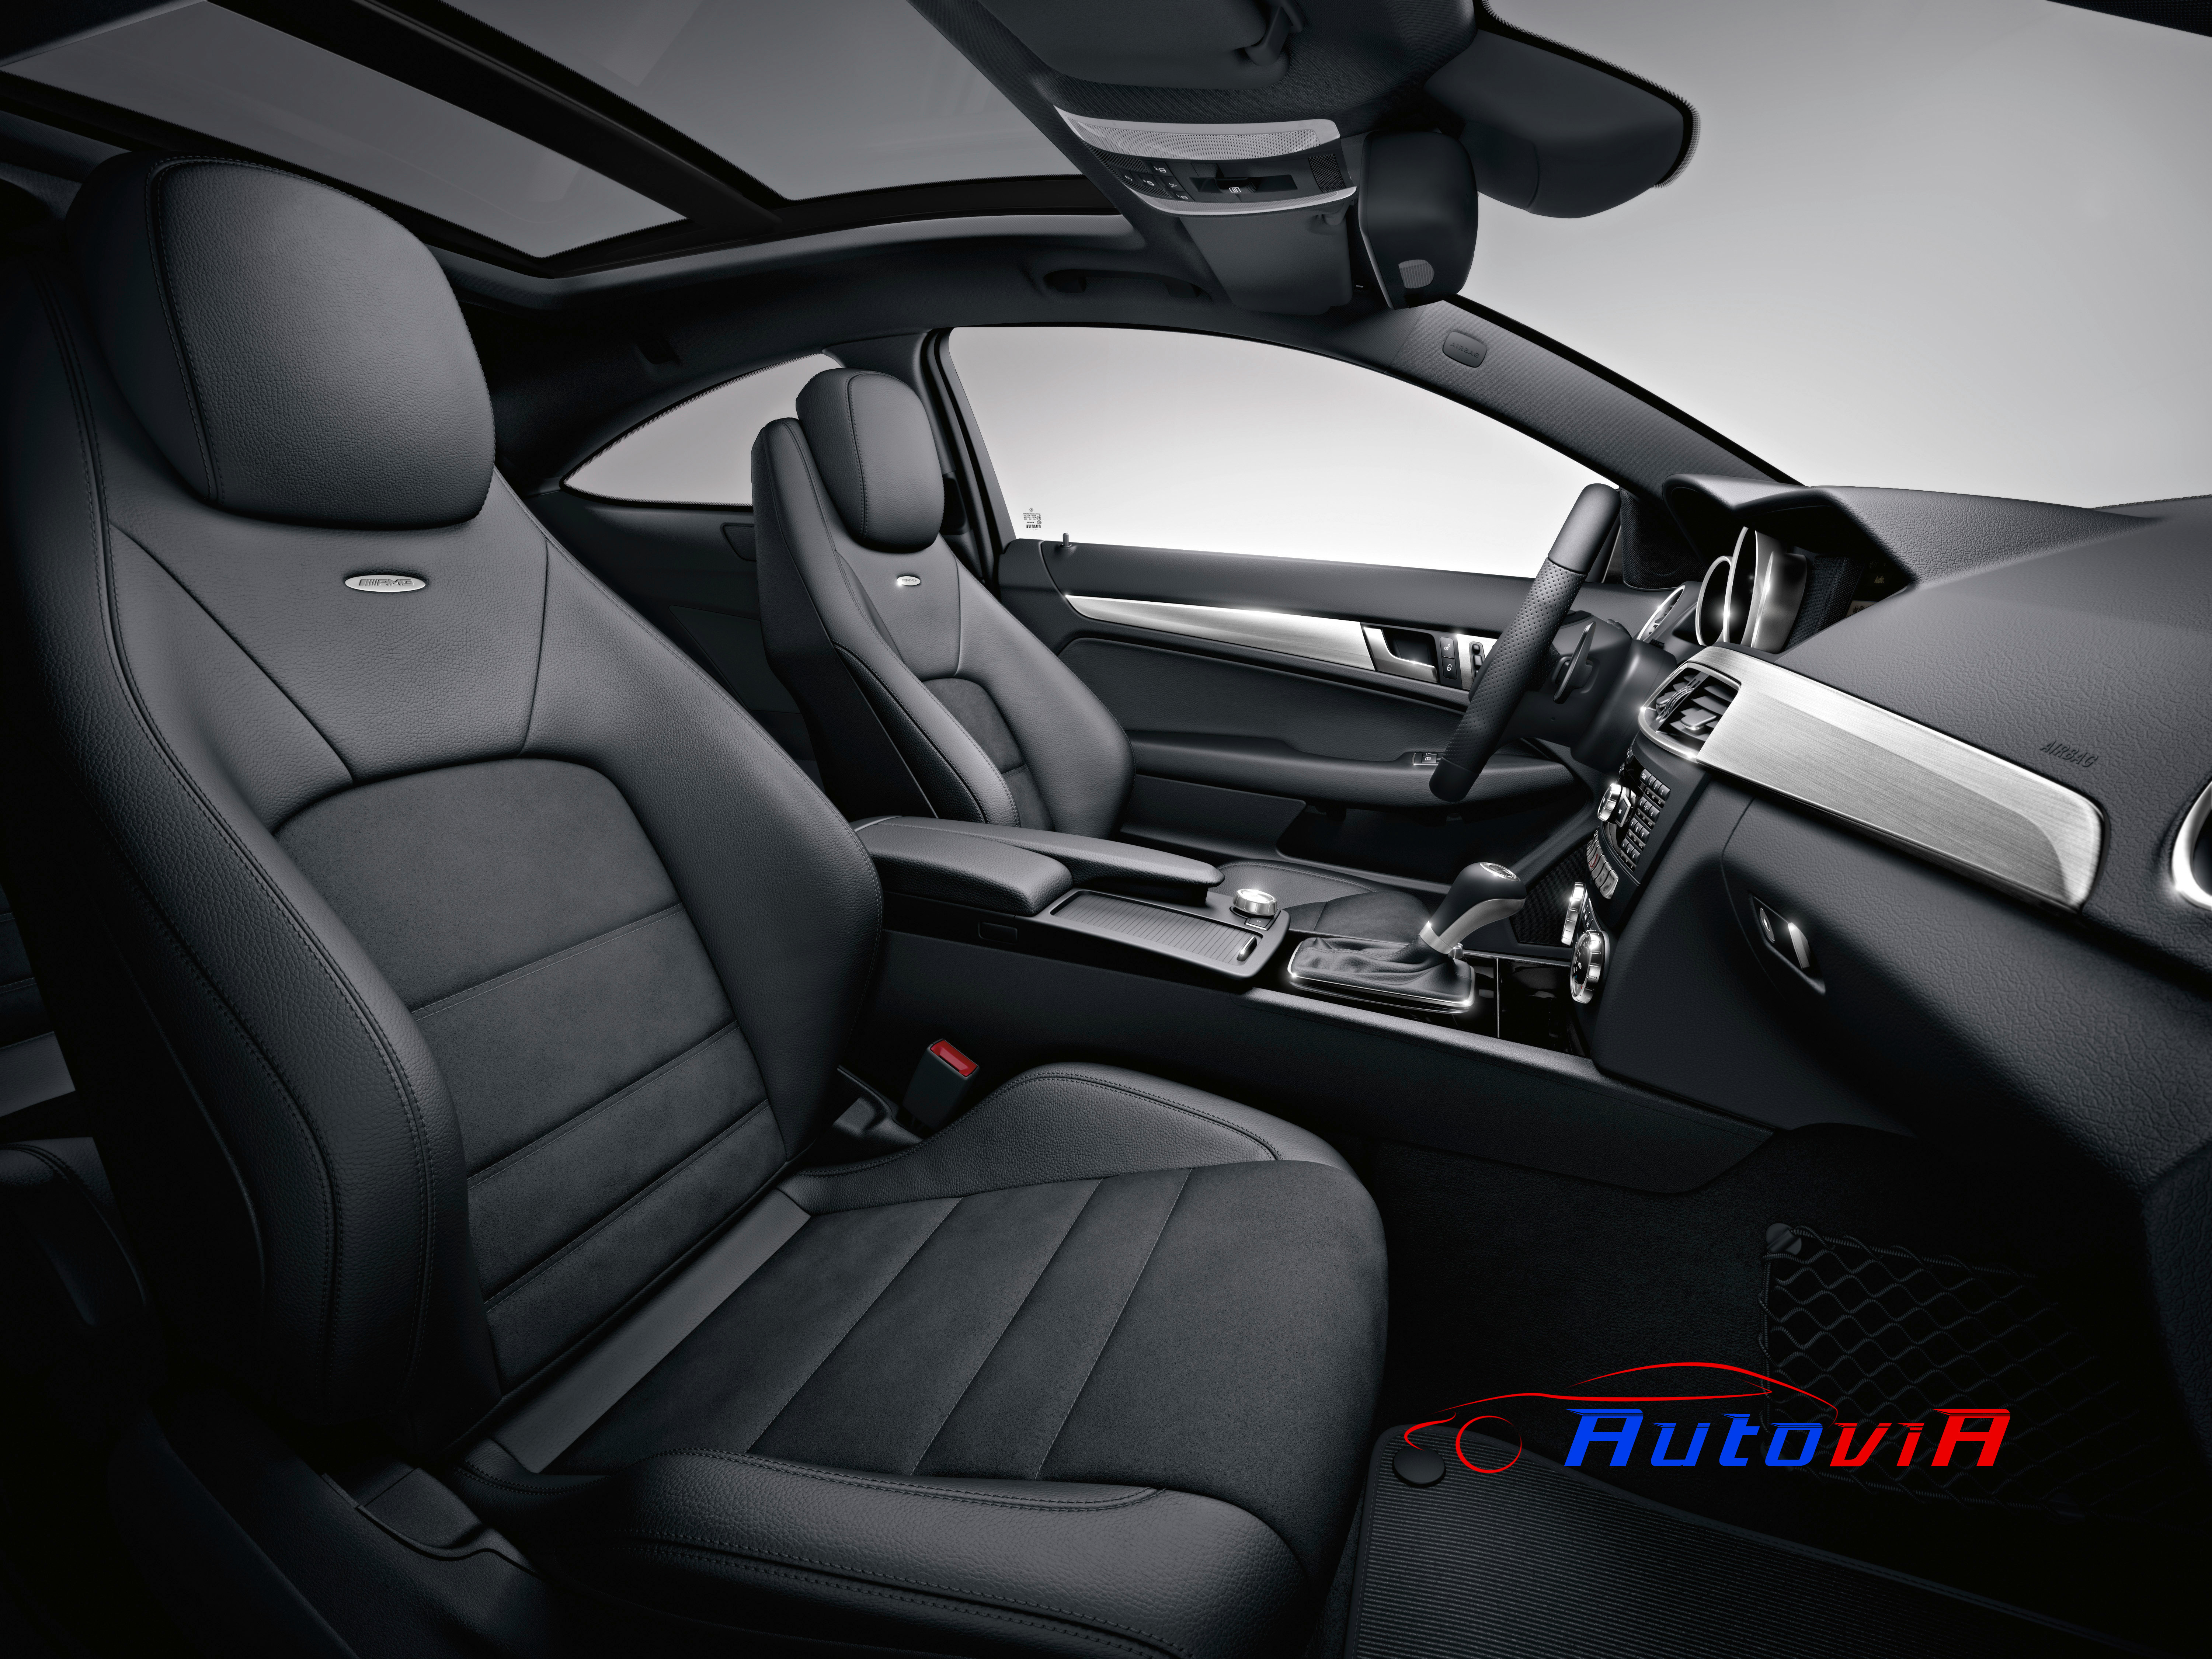 Mercedes benz clase c coup c 63 amg interior 03 for Interior mercedes clase c